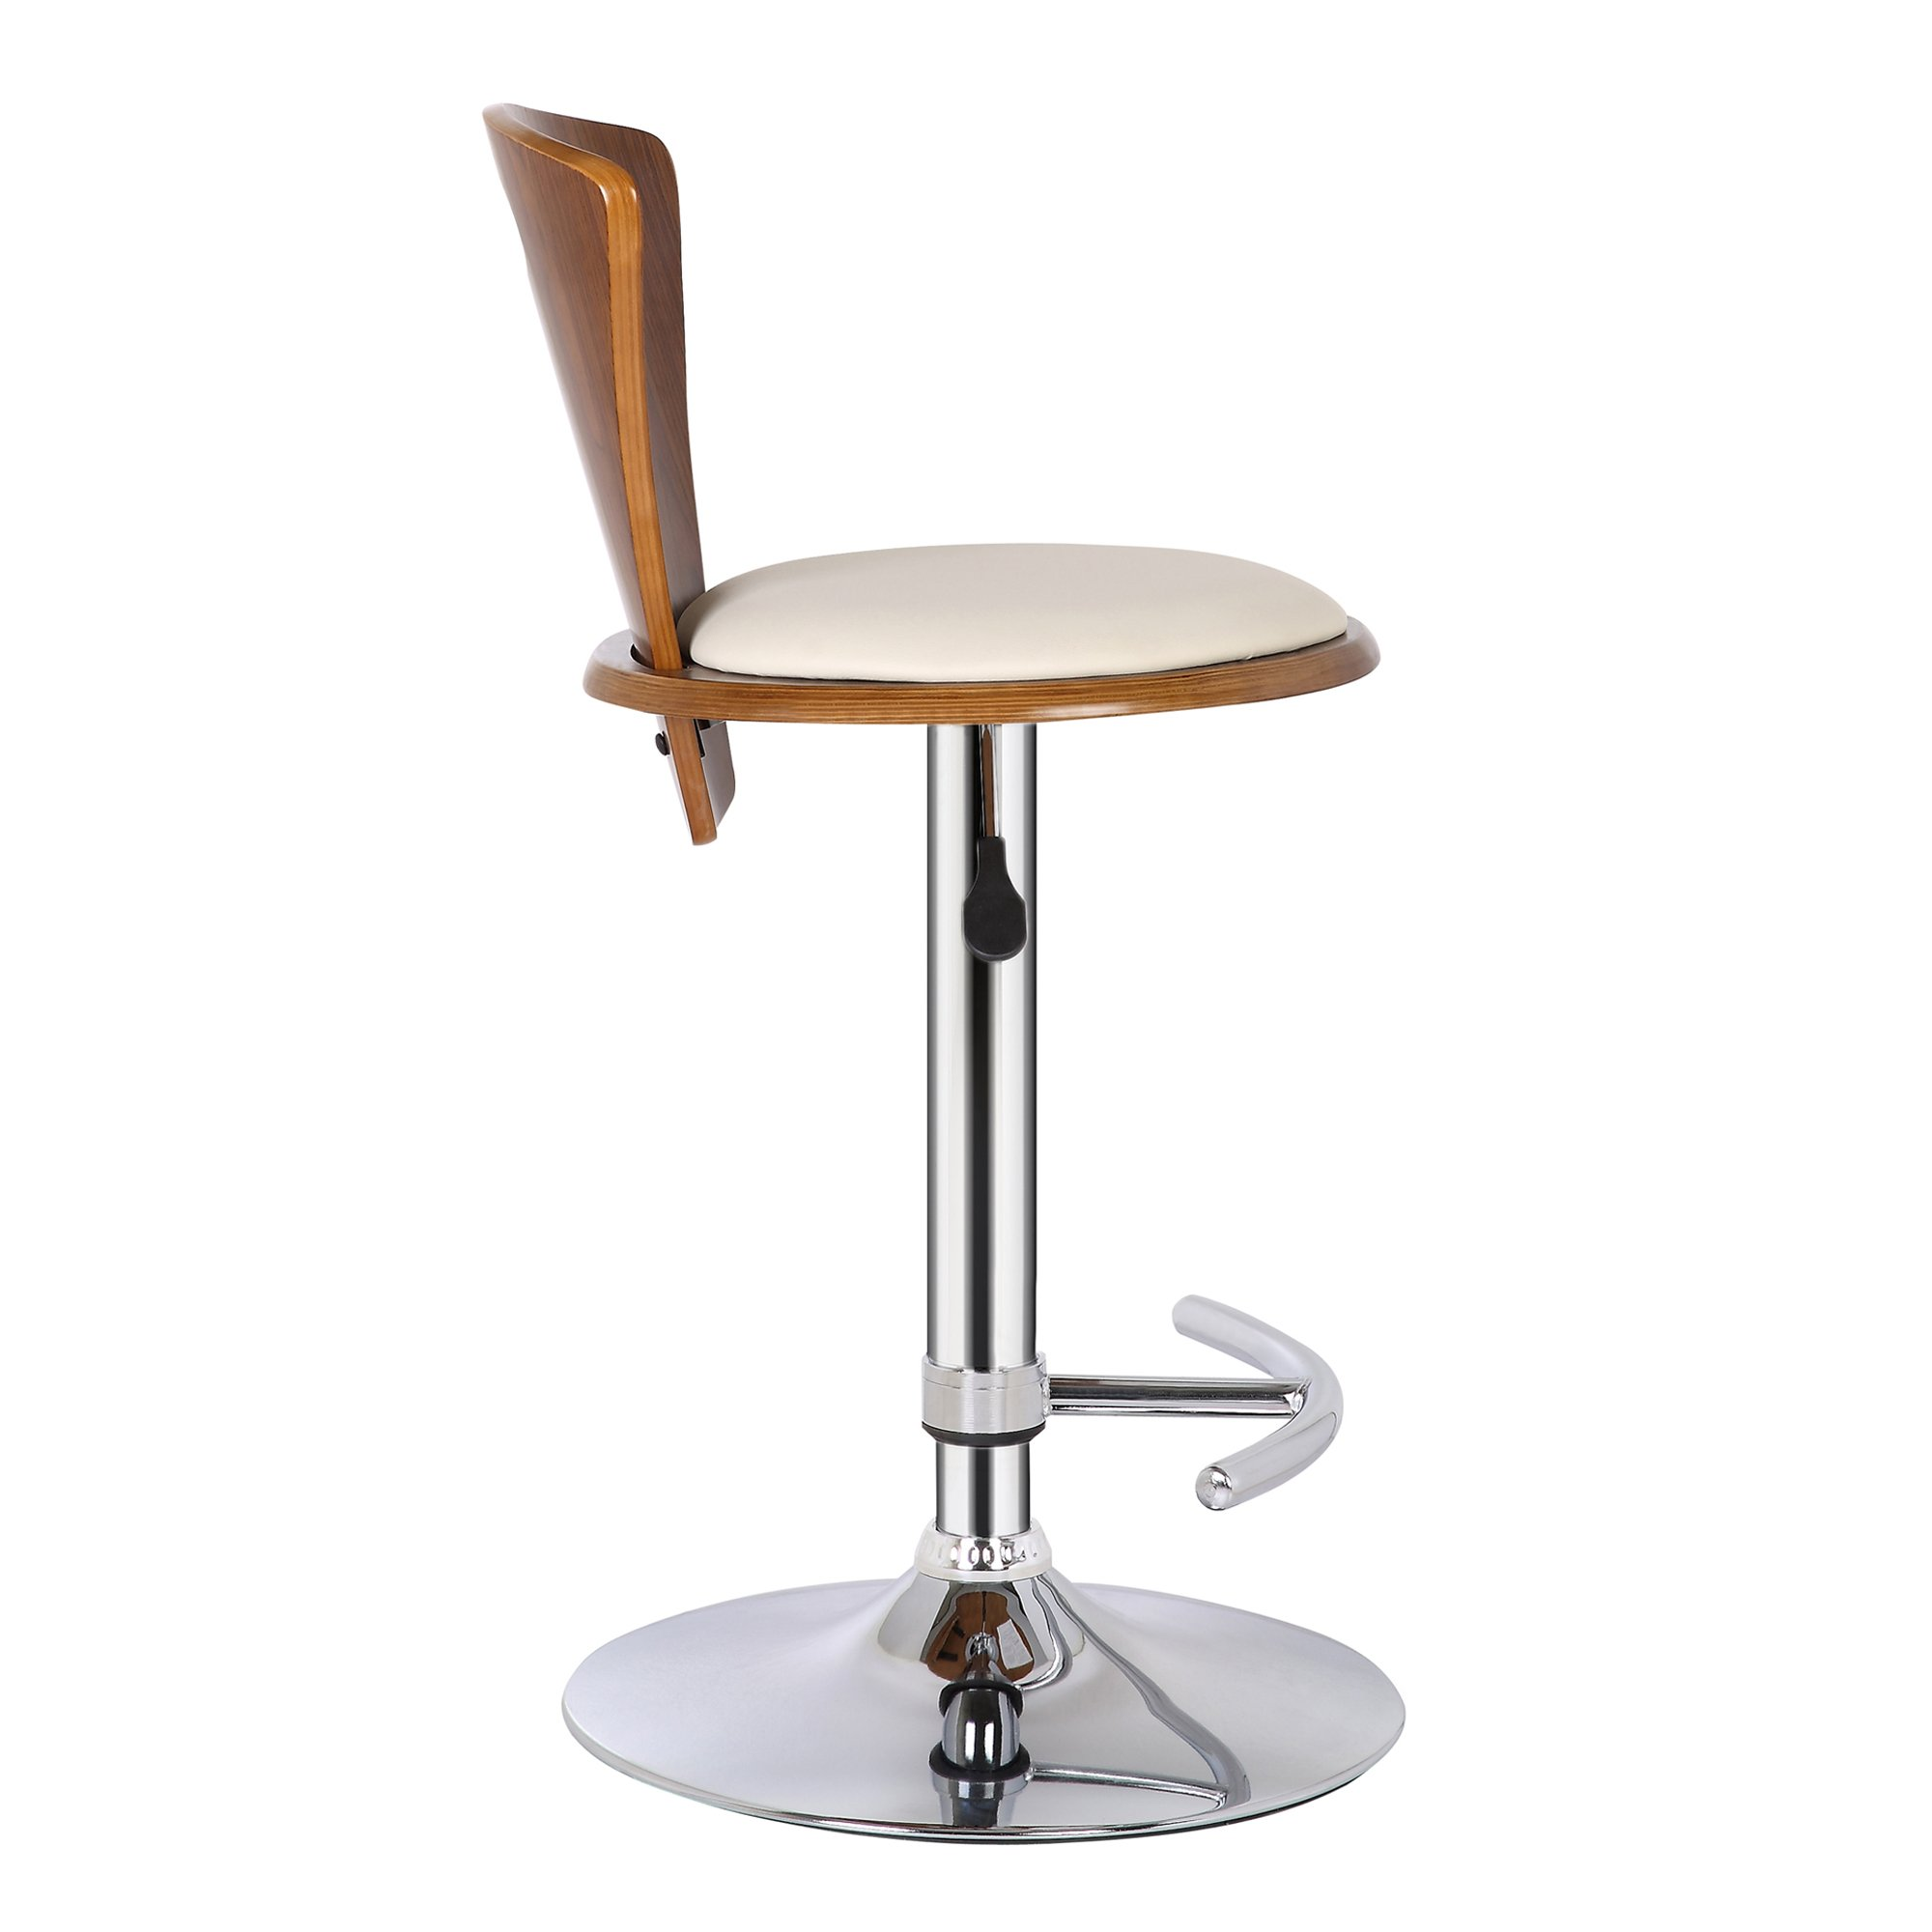 Armen Living LCSEBACRWA Seattle Barstool in Cream Faux Leather, Walnut Wood and Chrome Finish by Armen Living (Image #5)